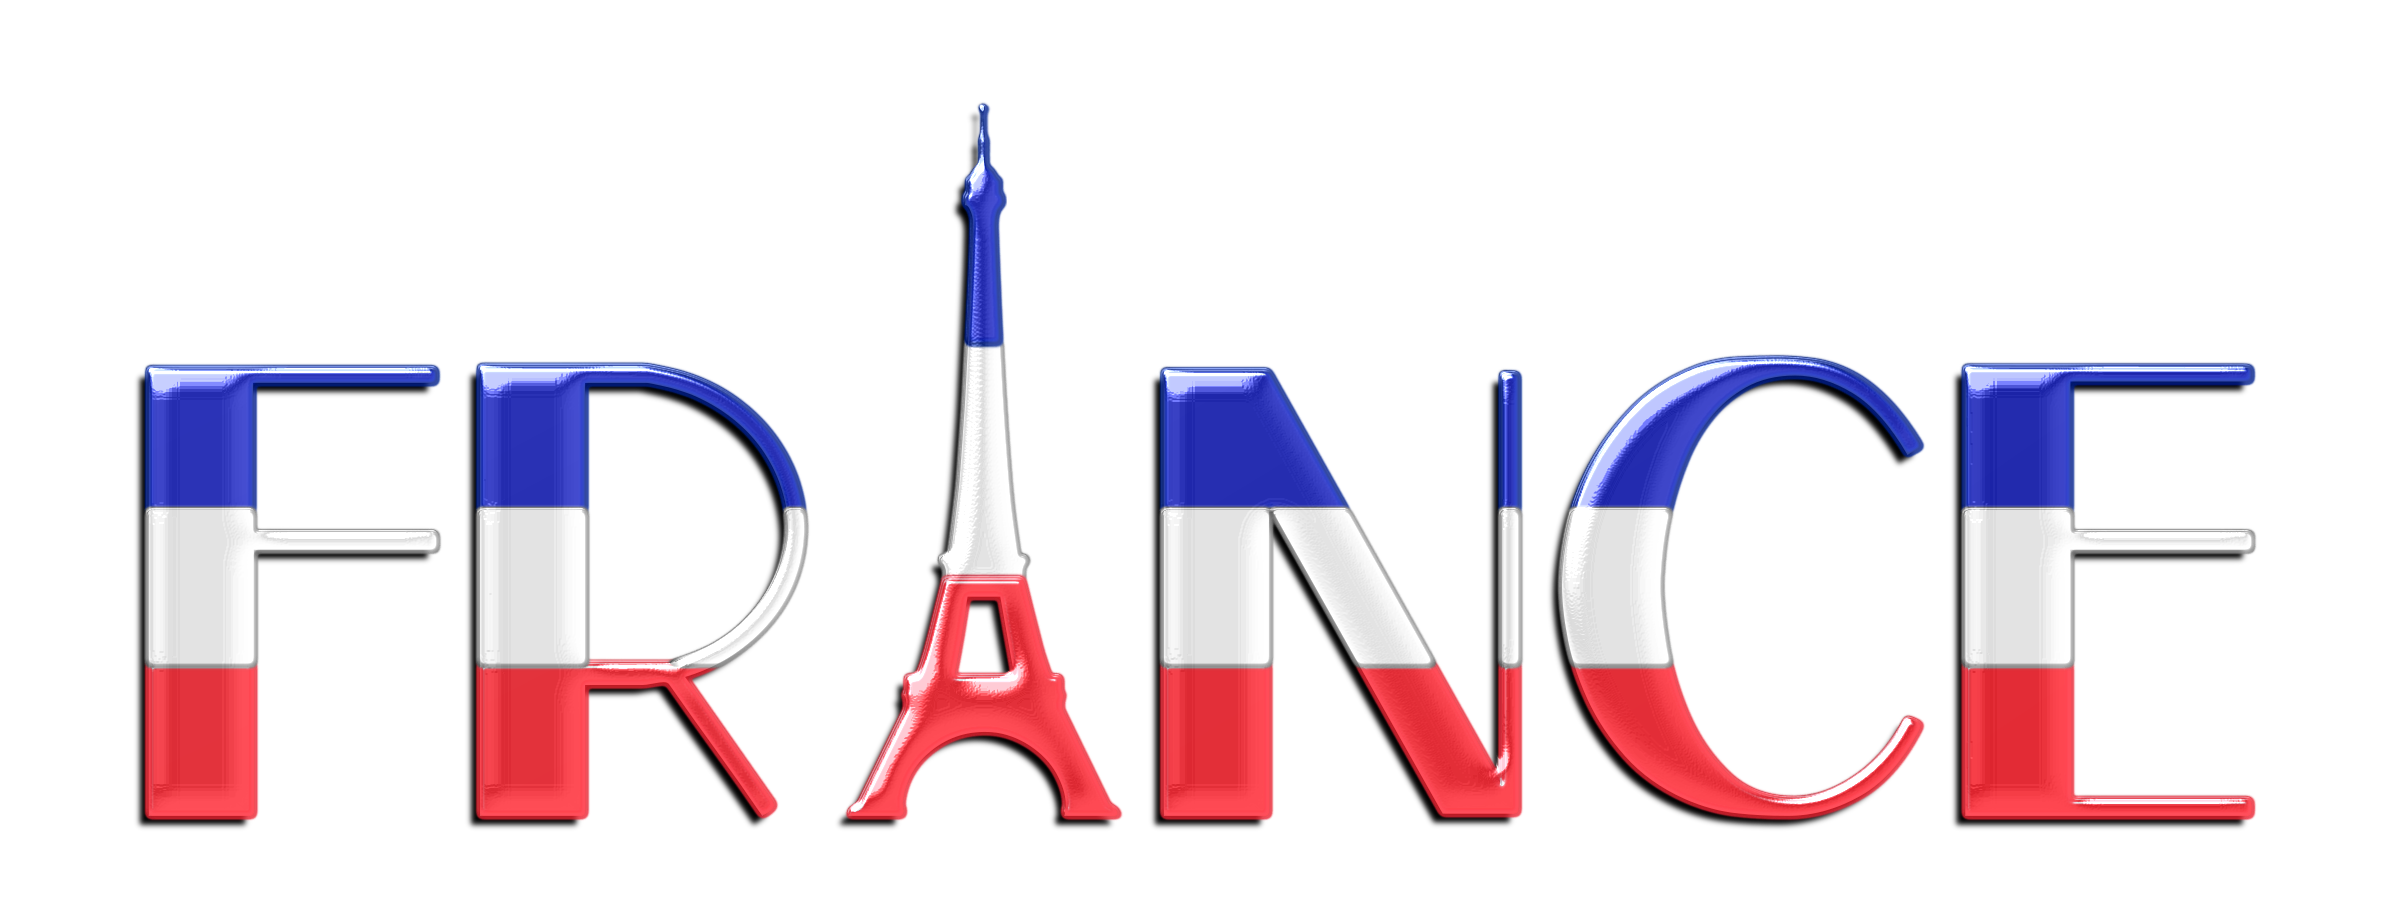 France clipart fractal. Typography enhanced icons png